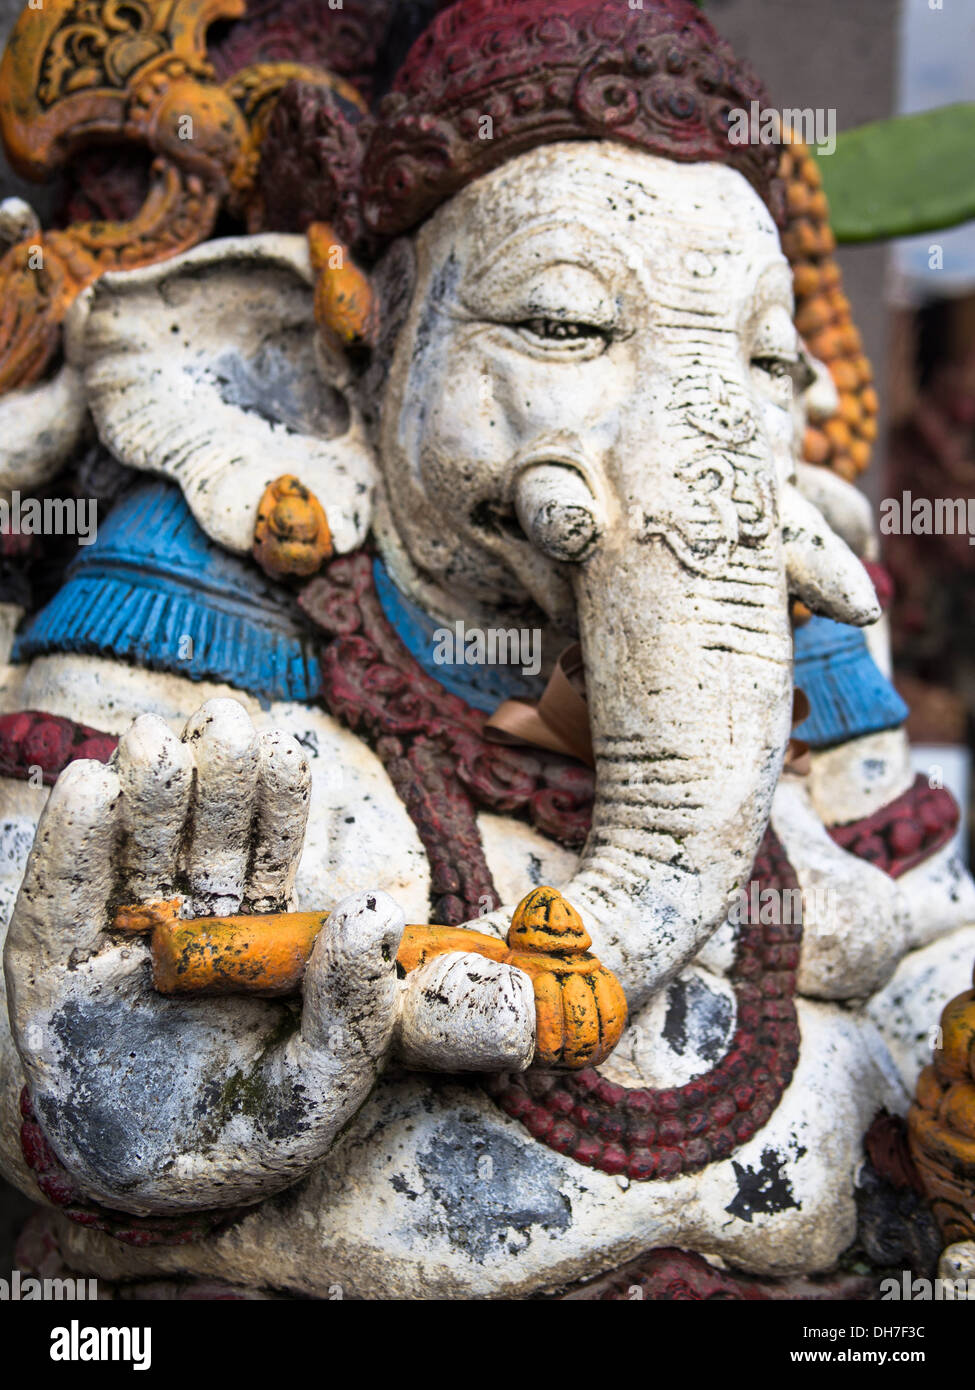 A colorful Ganesha statue on the streets of Ubud, Bali's cultural and spiritual capital. - Stock Image